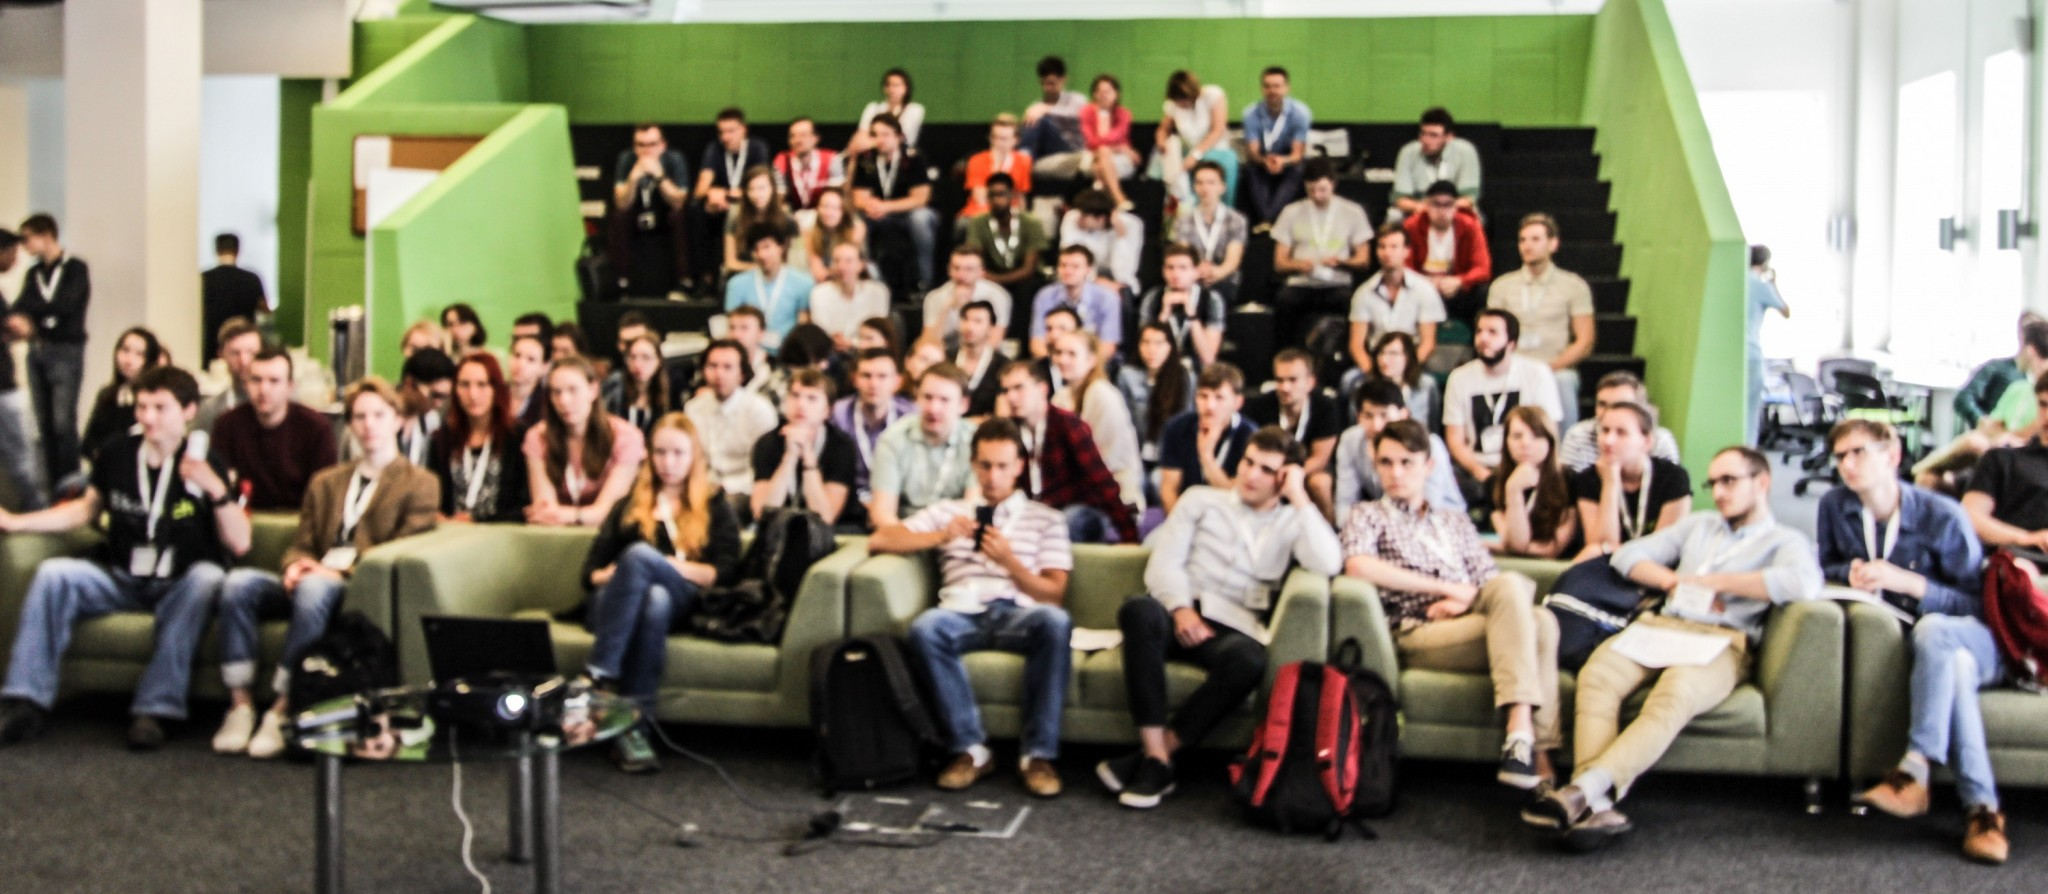 MSc hopefuls gather in Skoltech's student cohort. Photo: Skoltech.